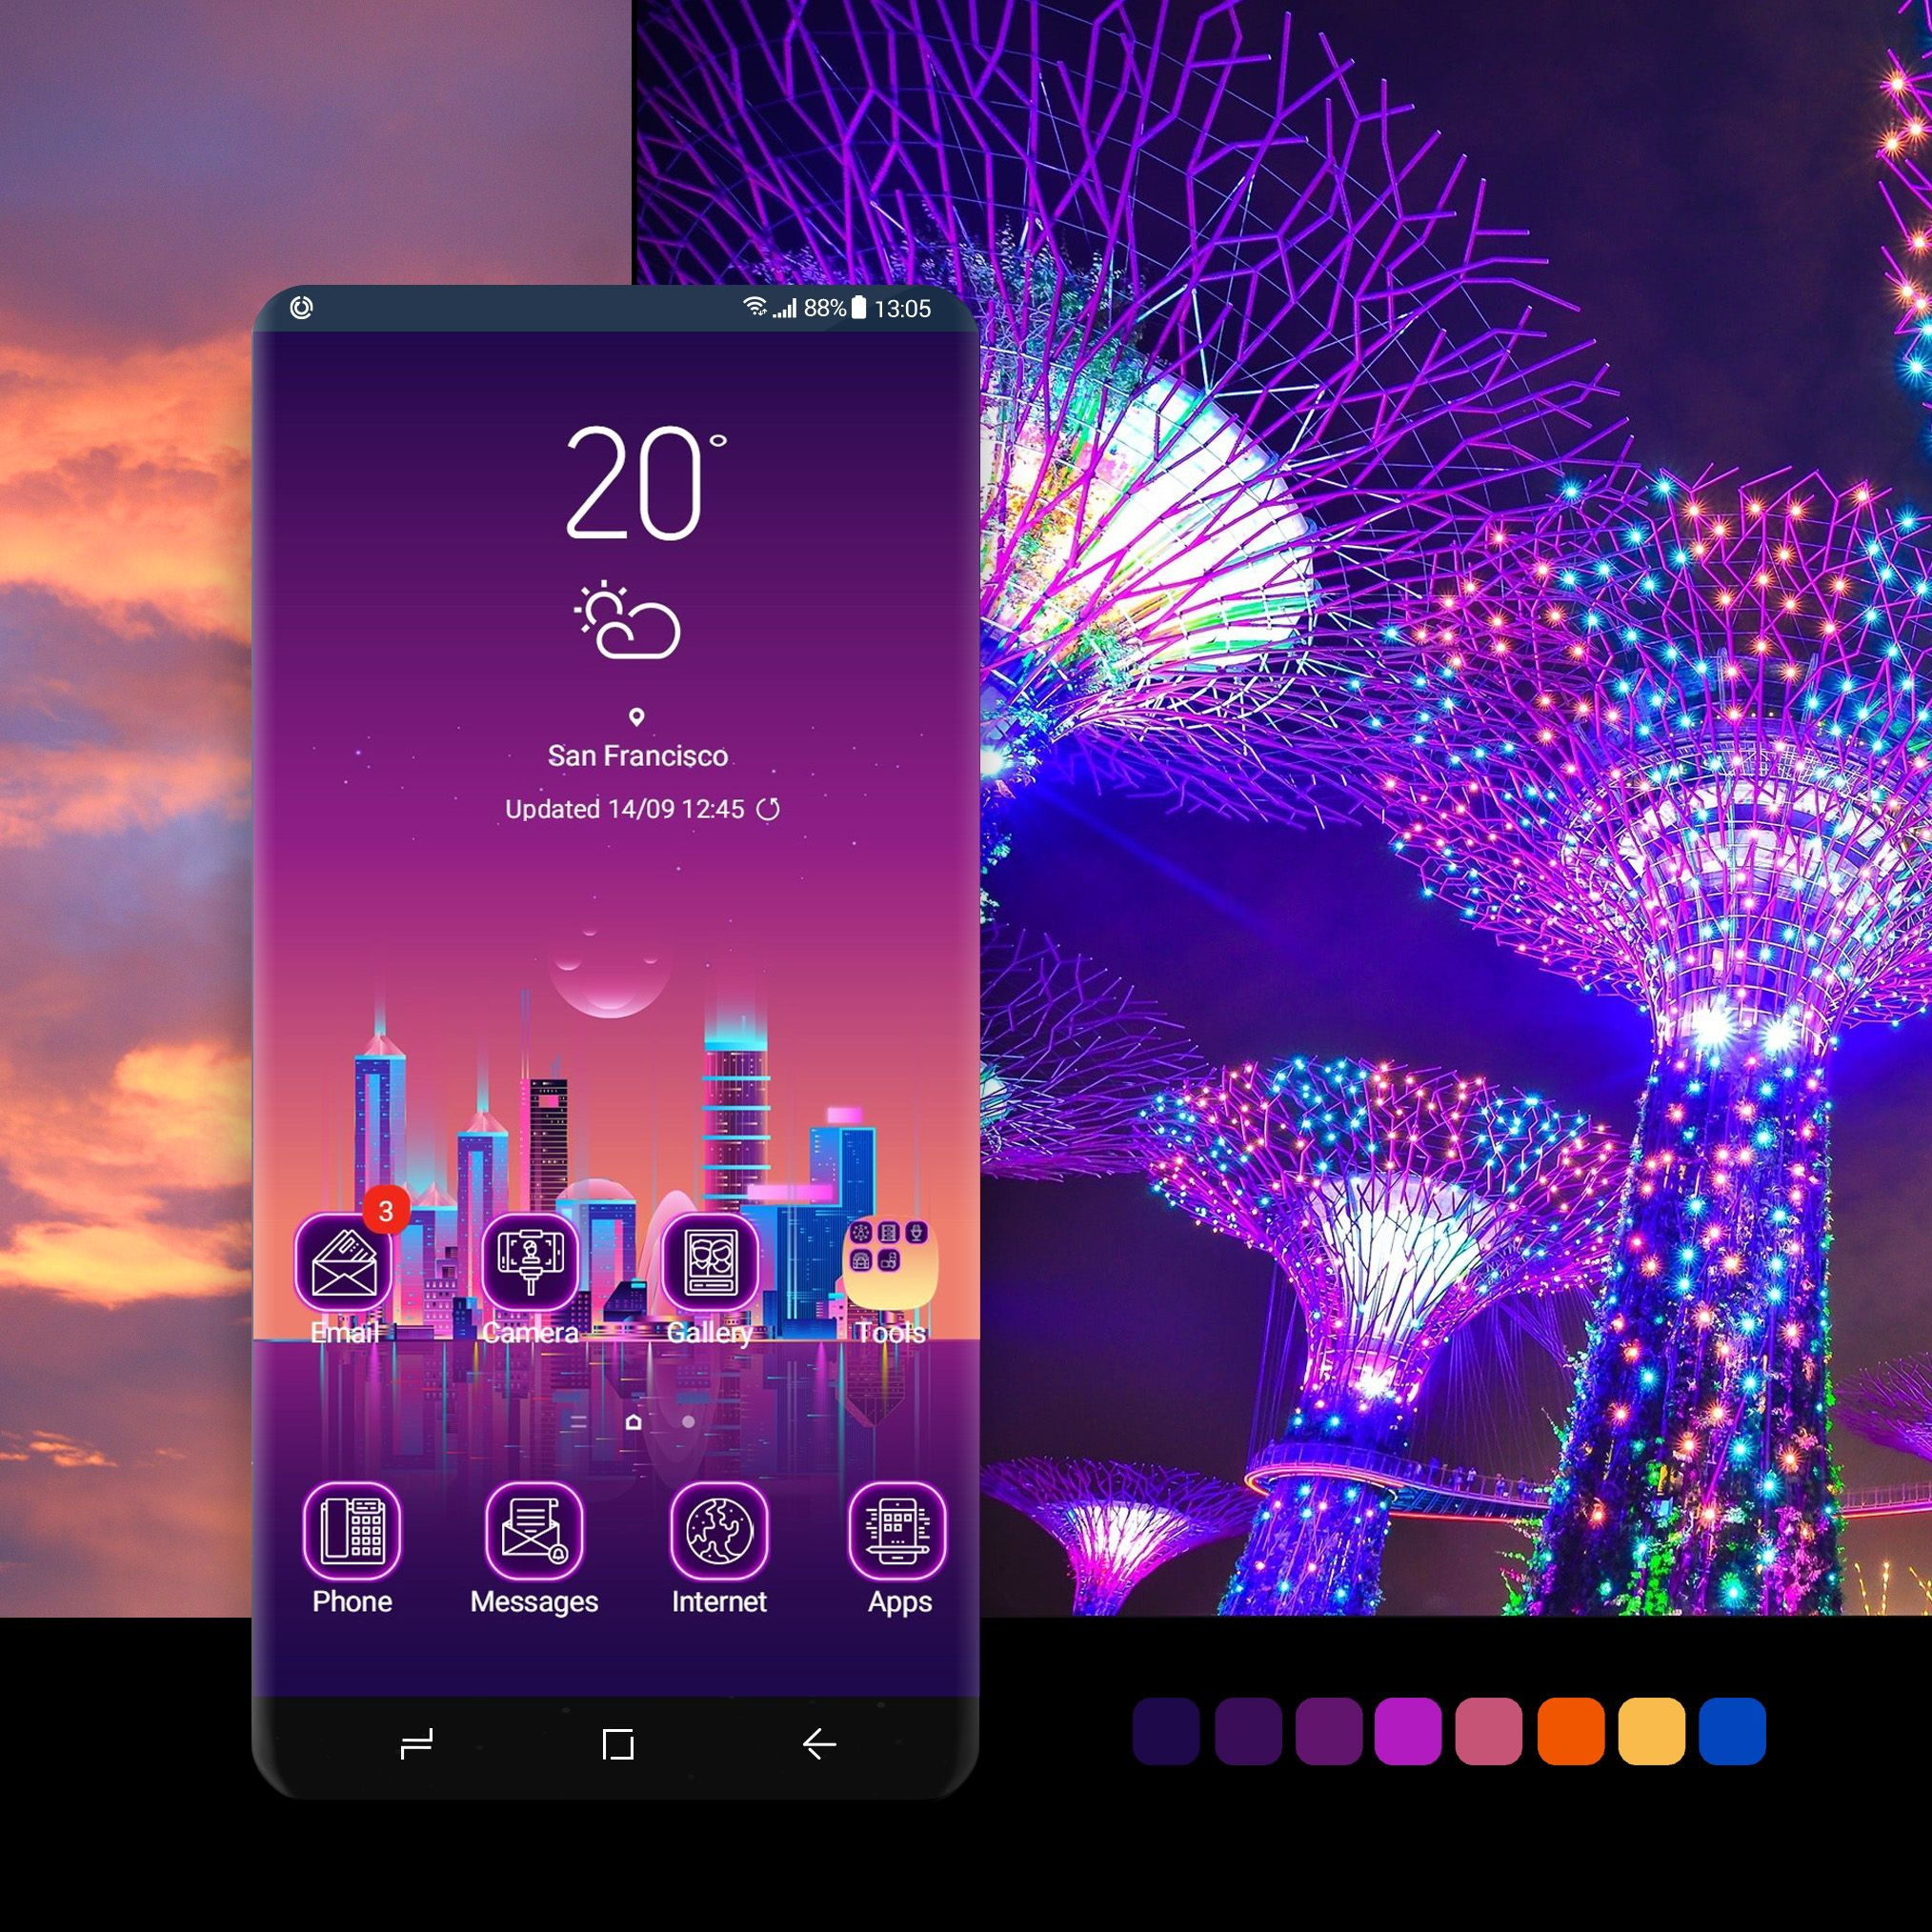 Neon City Theme Wallpaper Android Phone Smartphone Samsung Samsungthemestore Galaxy Samsunggalaxy Samsu Galaxy Theme Samsung Wallpaper Galaxy